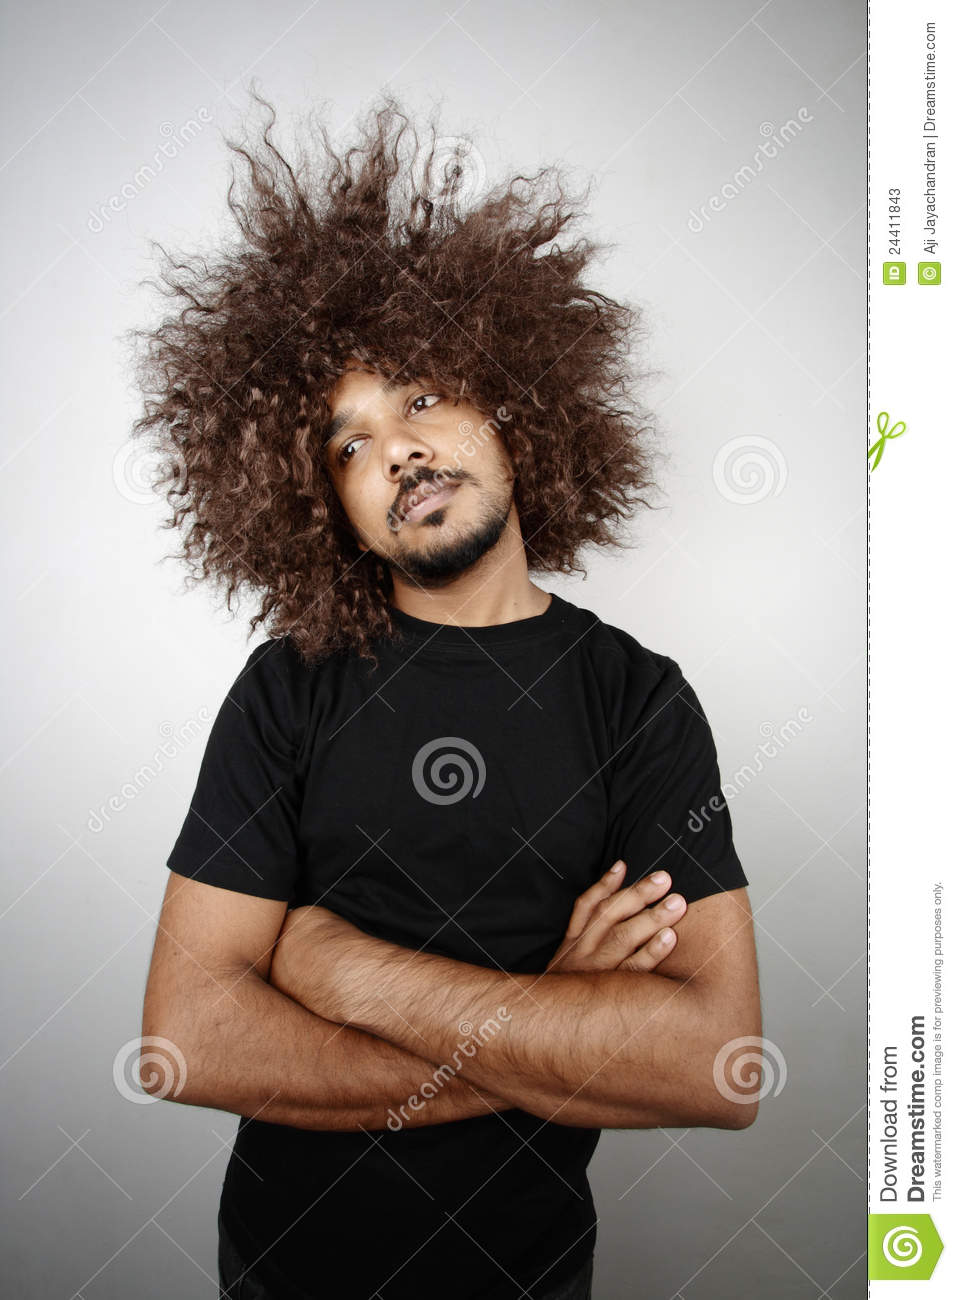 Funky Hairstyle Man Stock Image Image Of Hair Lazy 24411843